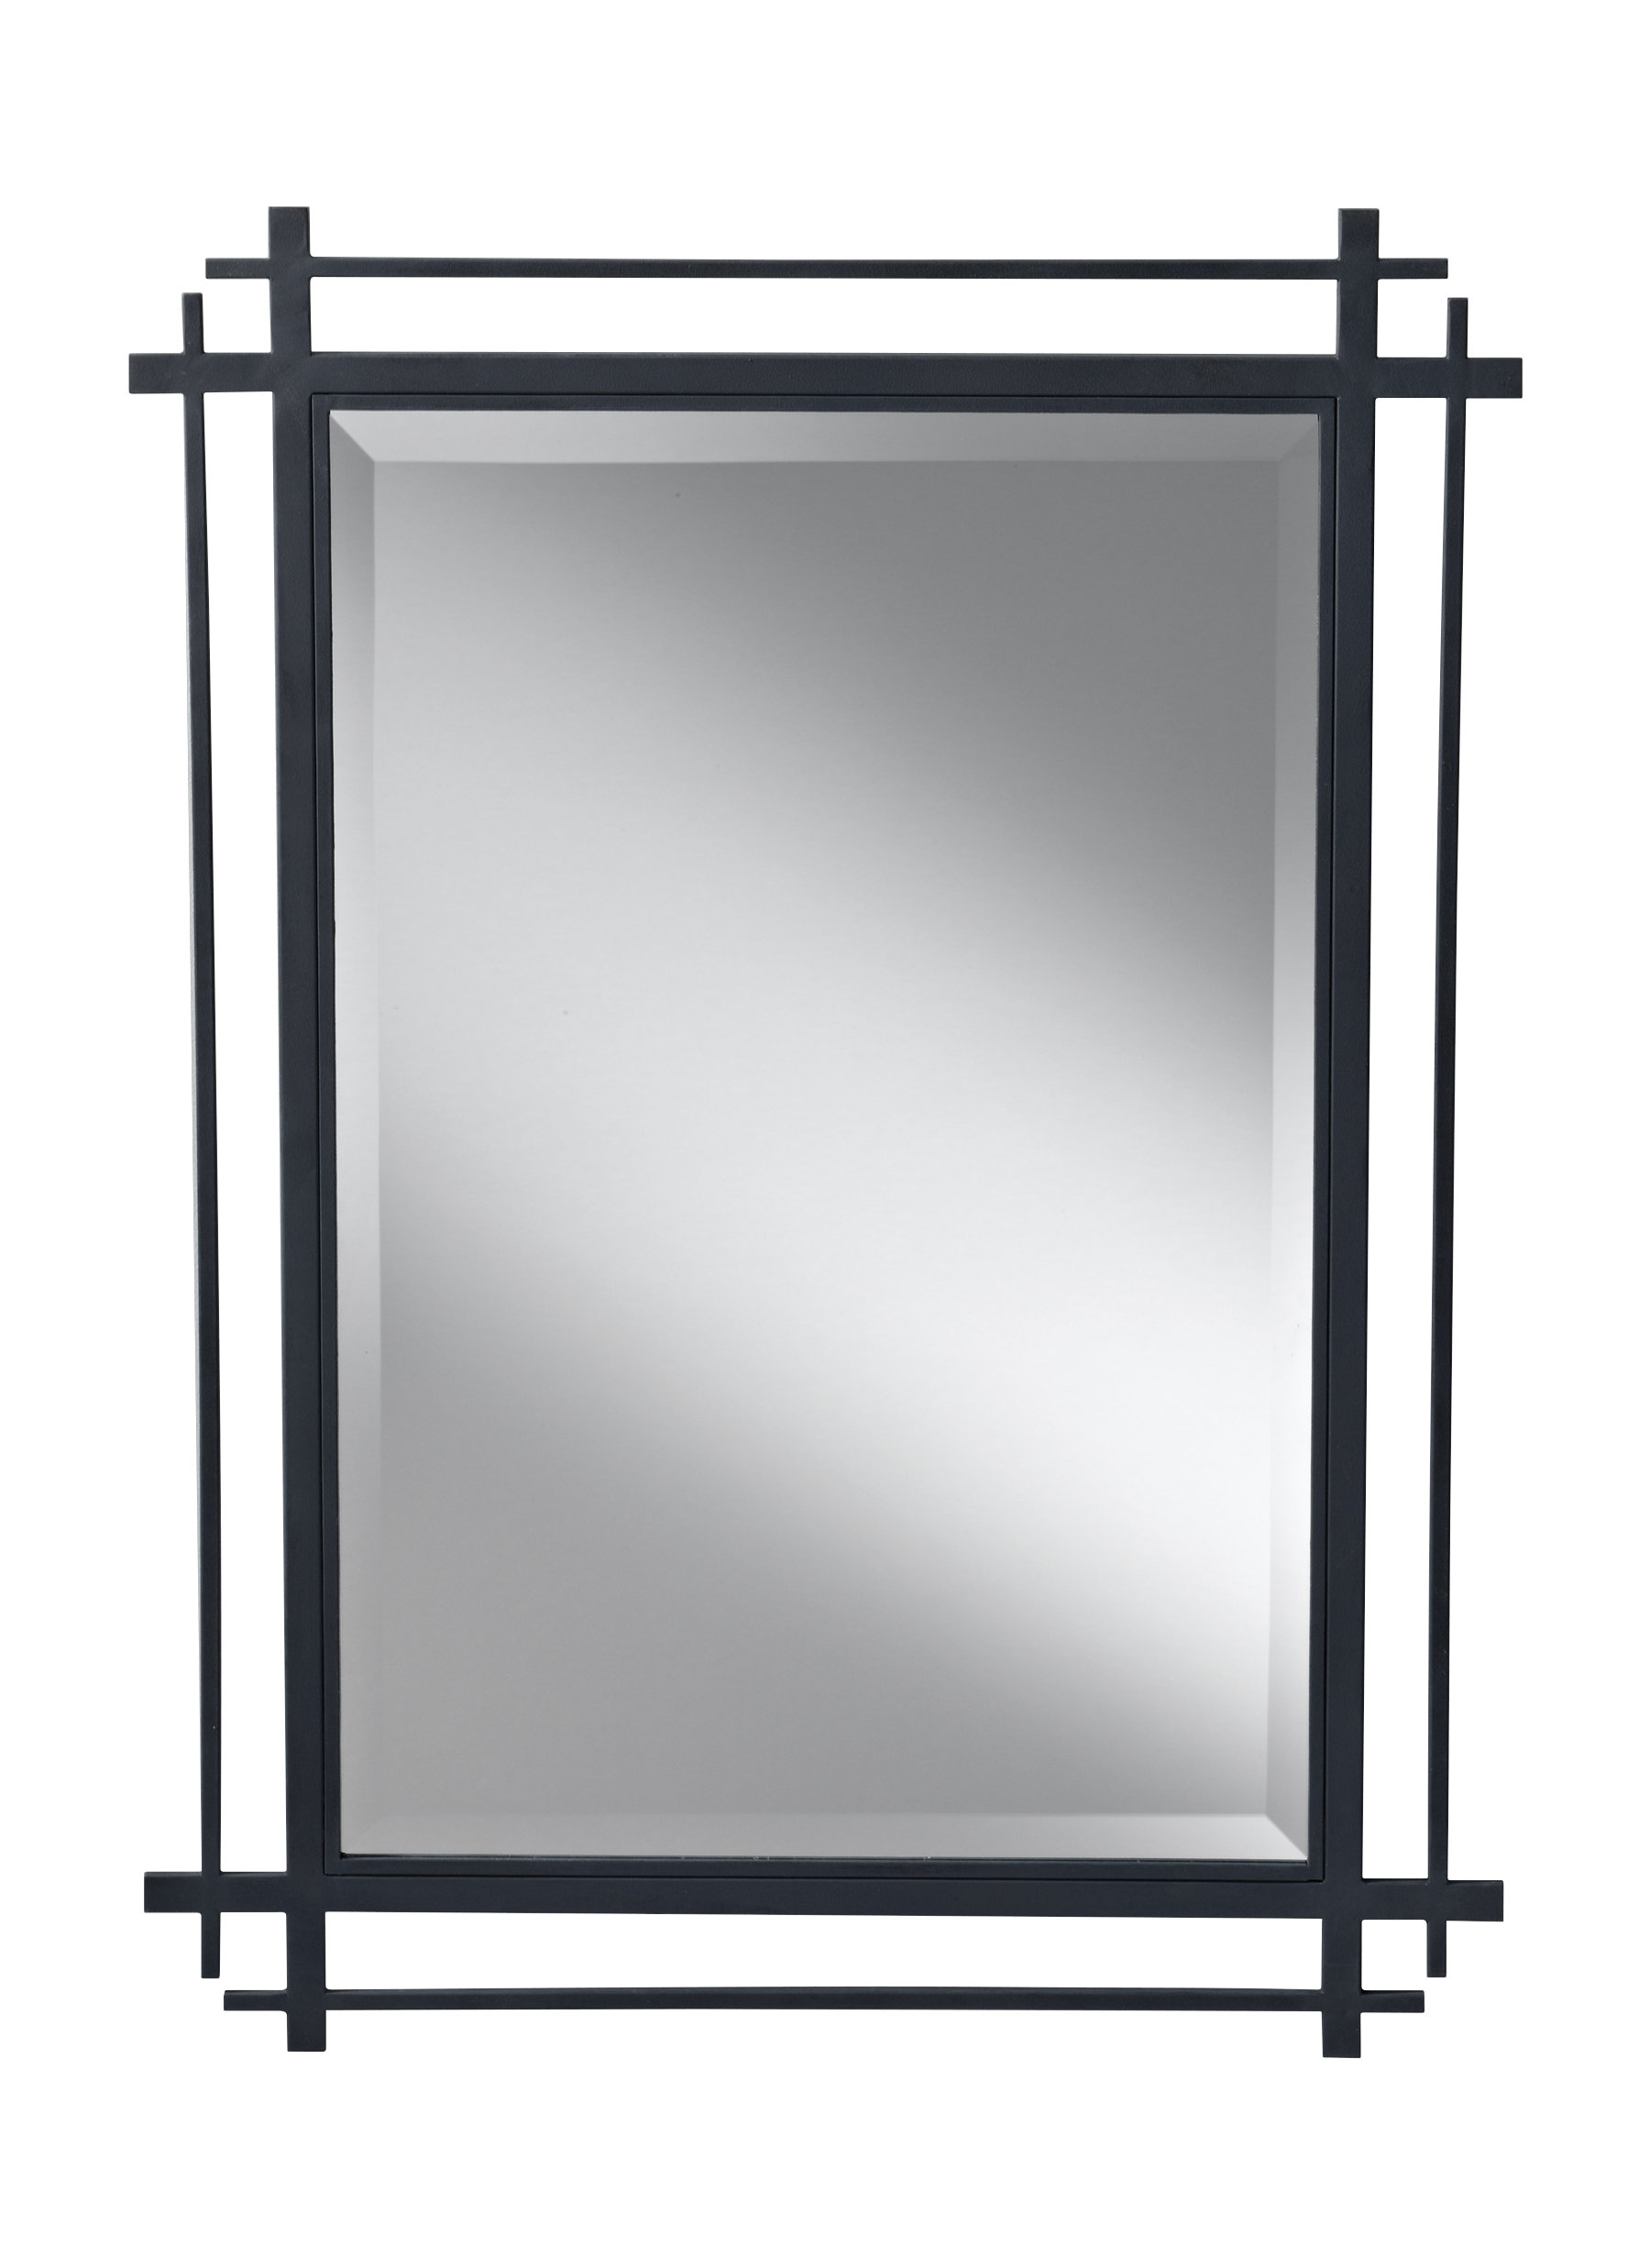 Industrial Wall & Accent Mirrors | Birch Lane with regard to Koeller Industrial Metal Wall Mirrors (Image 12 of 30)